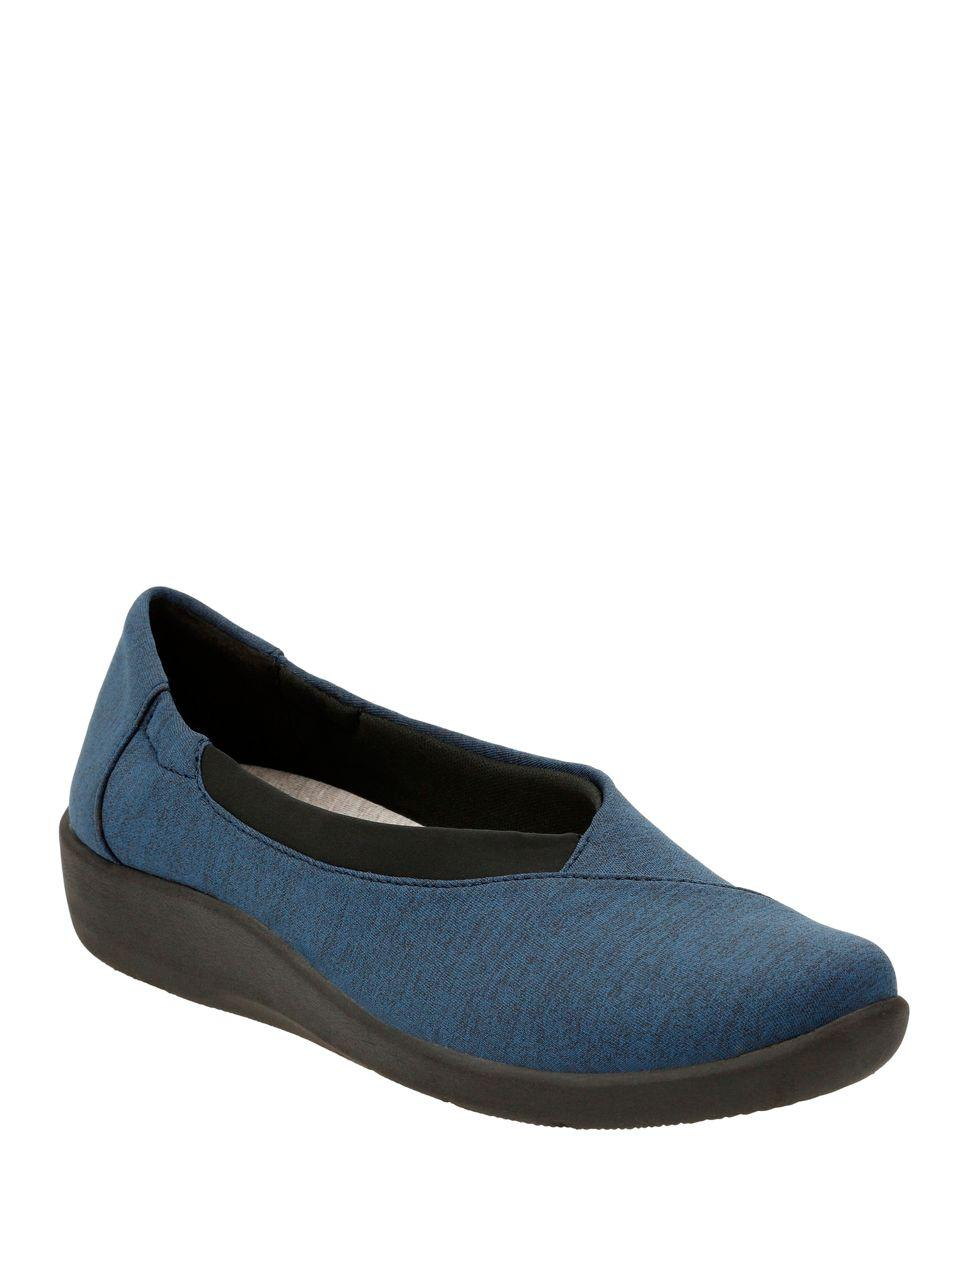 Cloudsteppers By Clarks Sillian Jetay Slip On Shoes